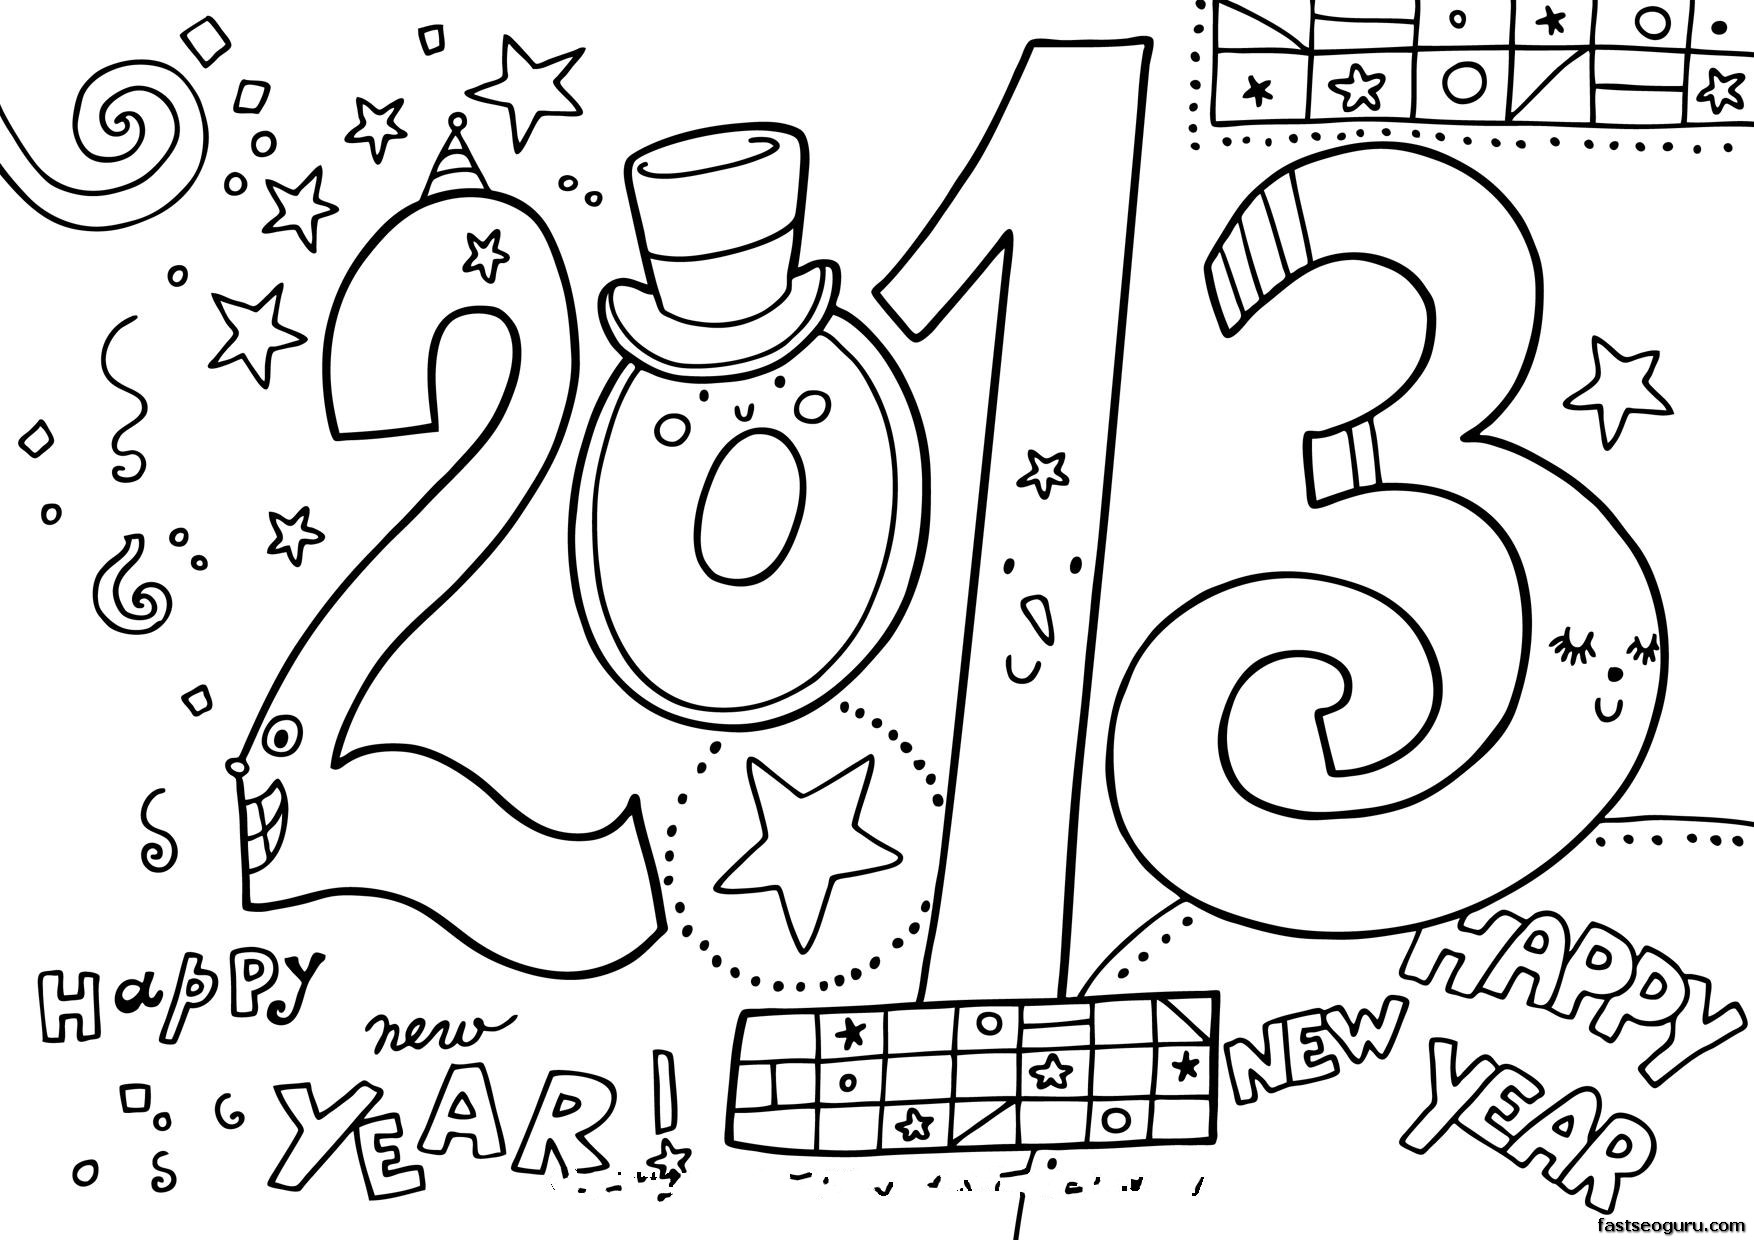 Free coloring pages new year 2016 - Colouring In Sheets Year 1 Coloring Pages For New Years Year Celebration